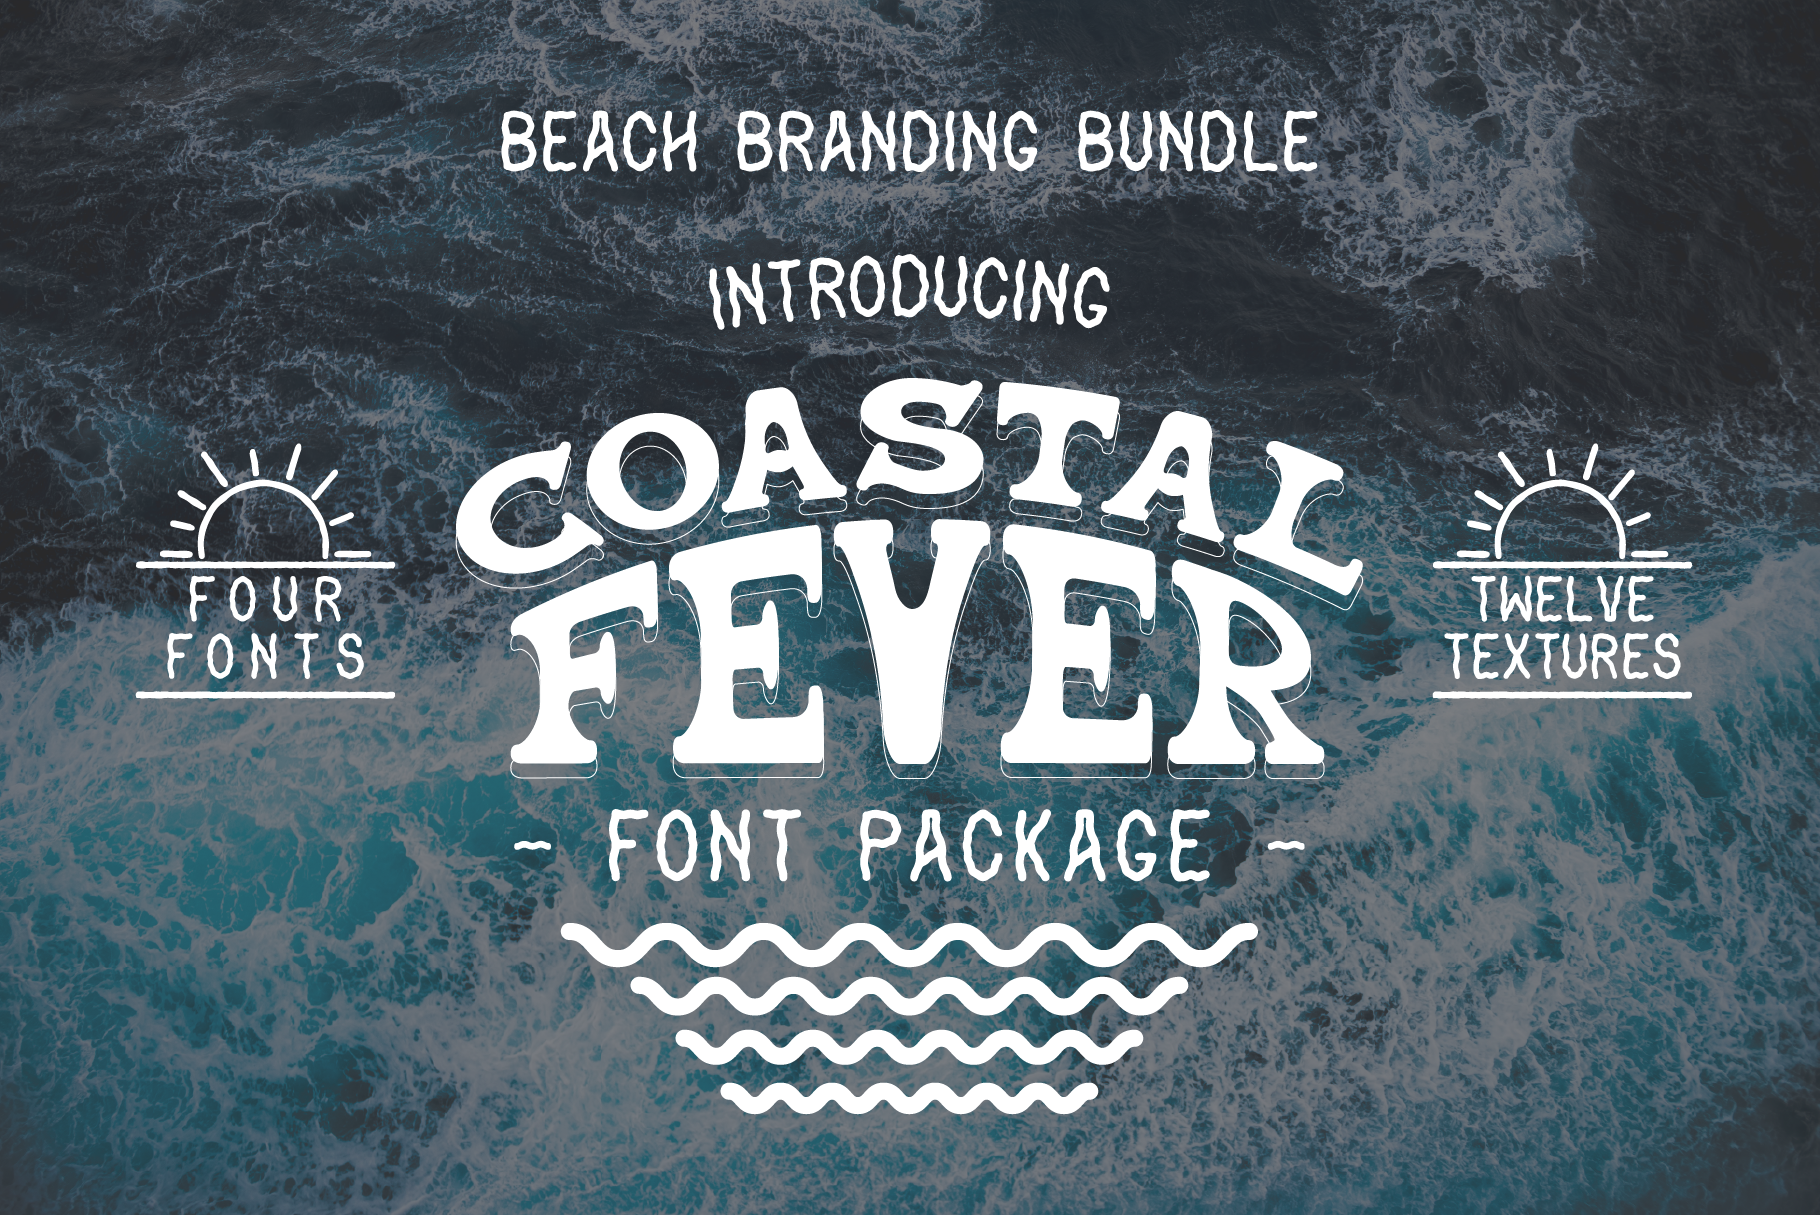 Coastal Fever - Font Package & Beach Textures example image 1